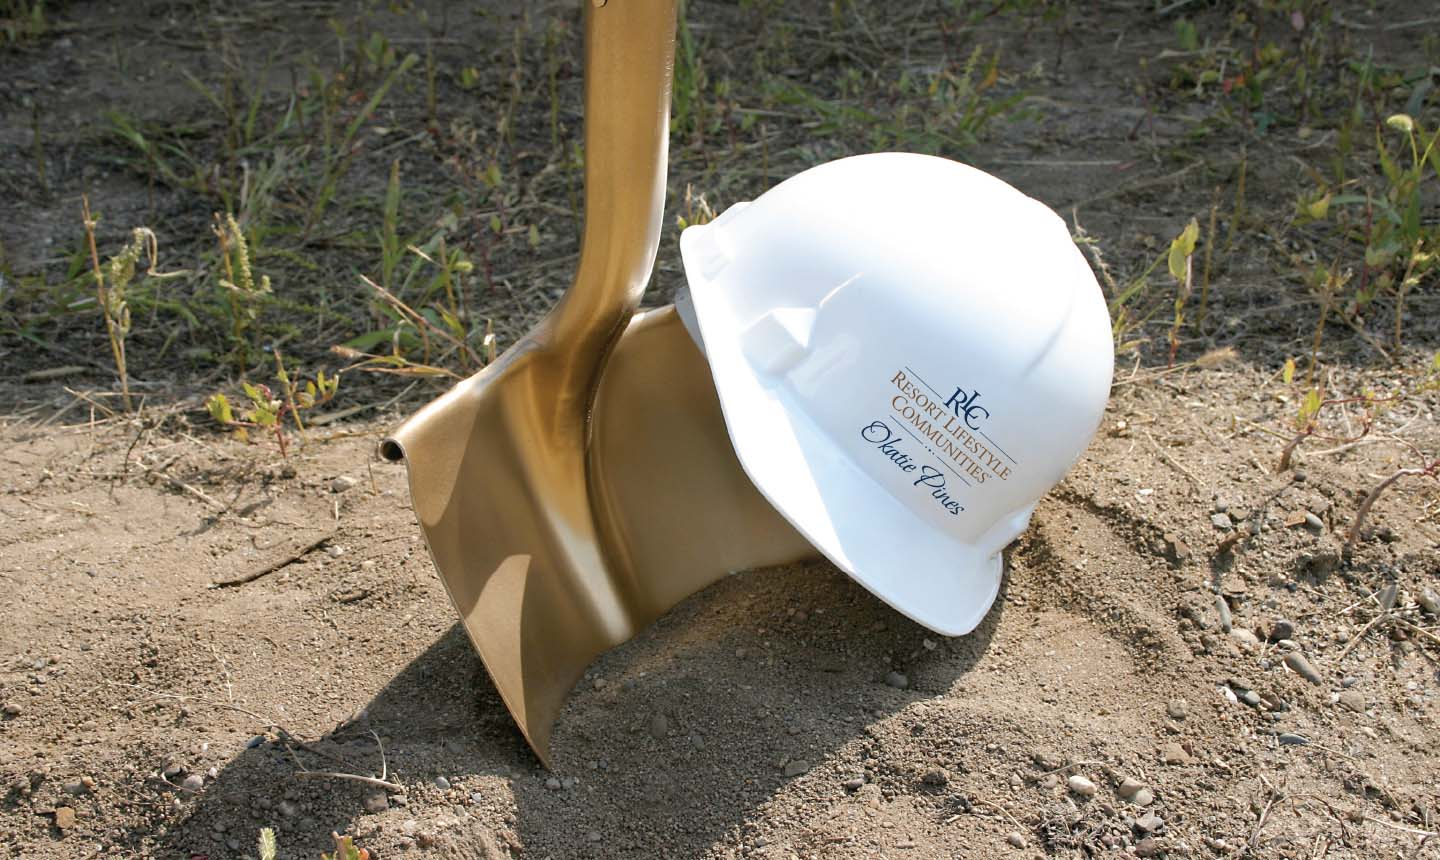 Golden shovel and Resort Lifestyle Communities hard hat representing Okatie Pines construction.